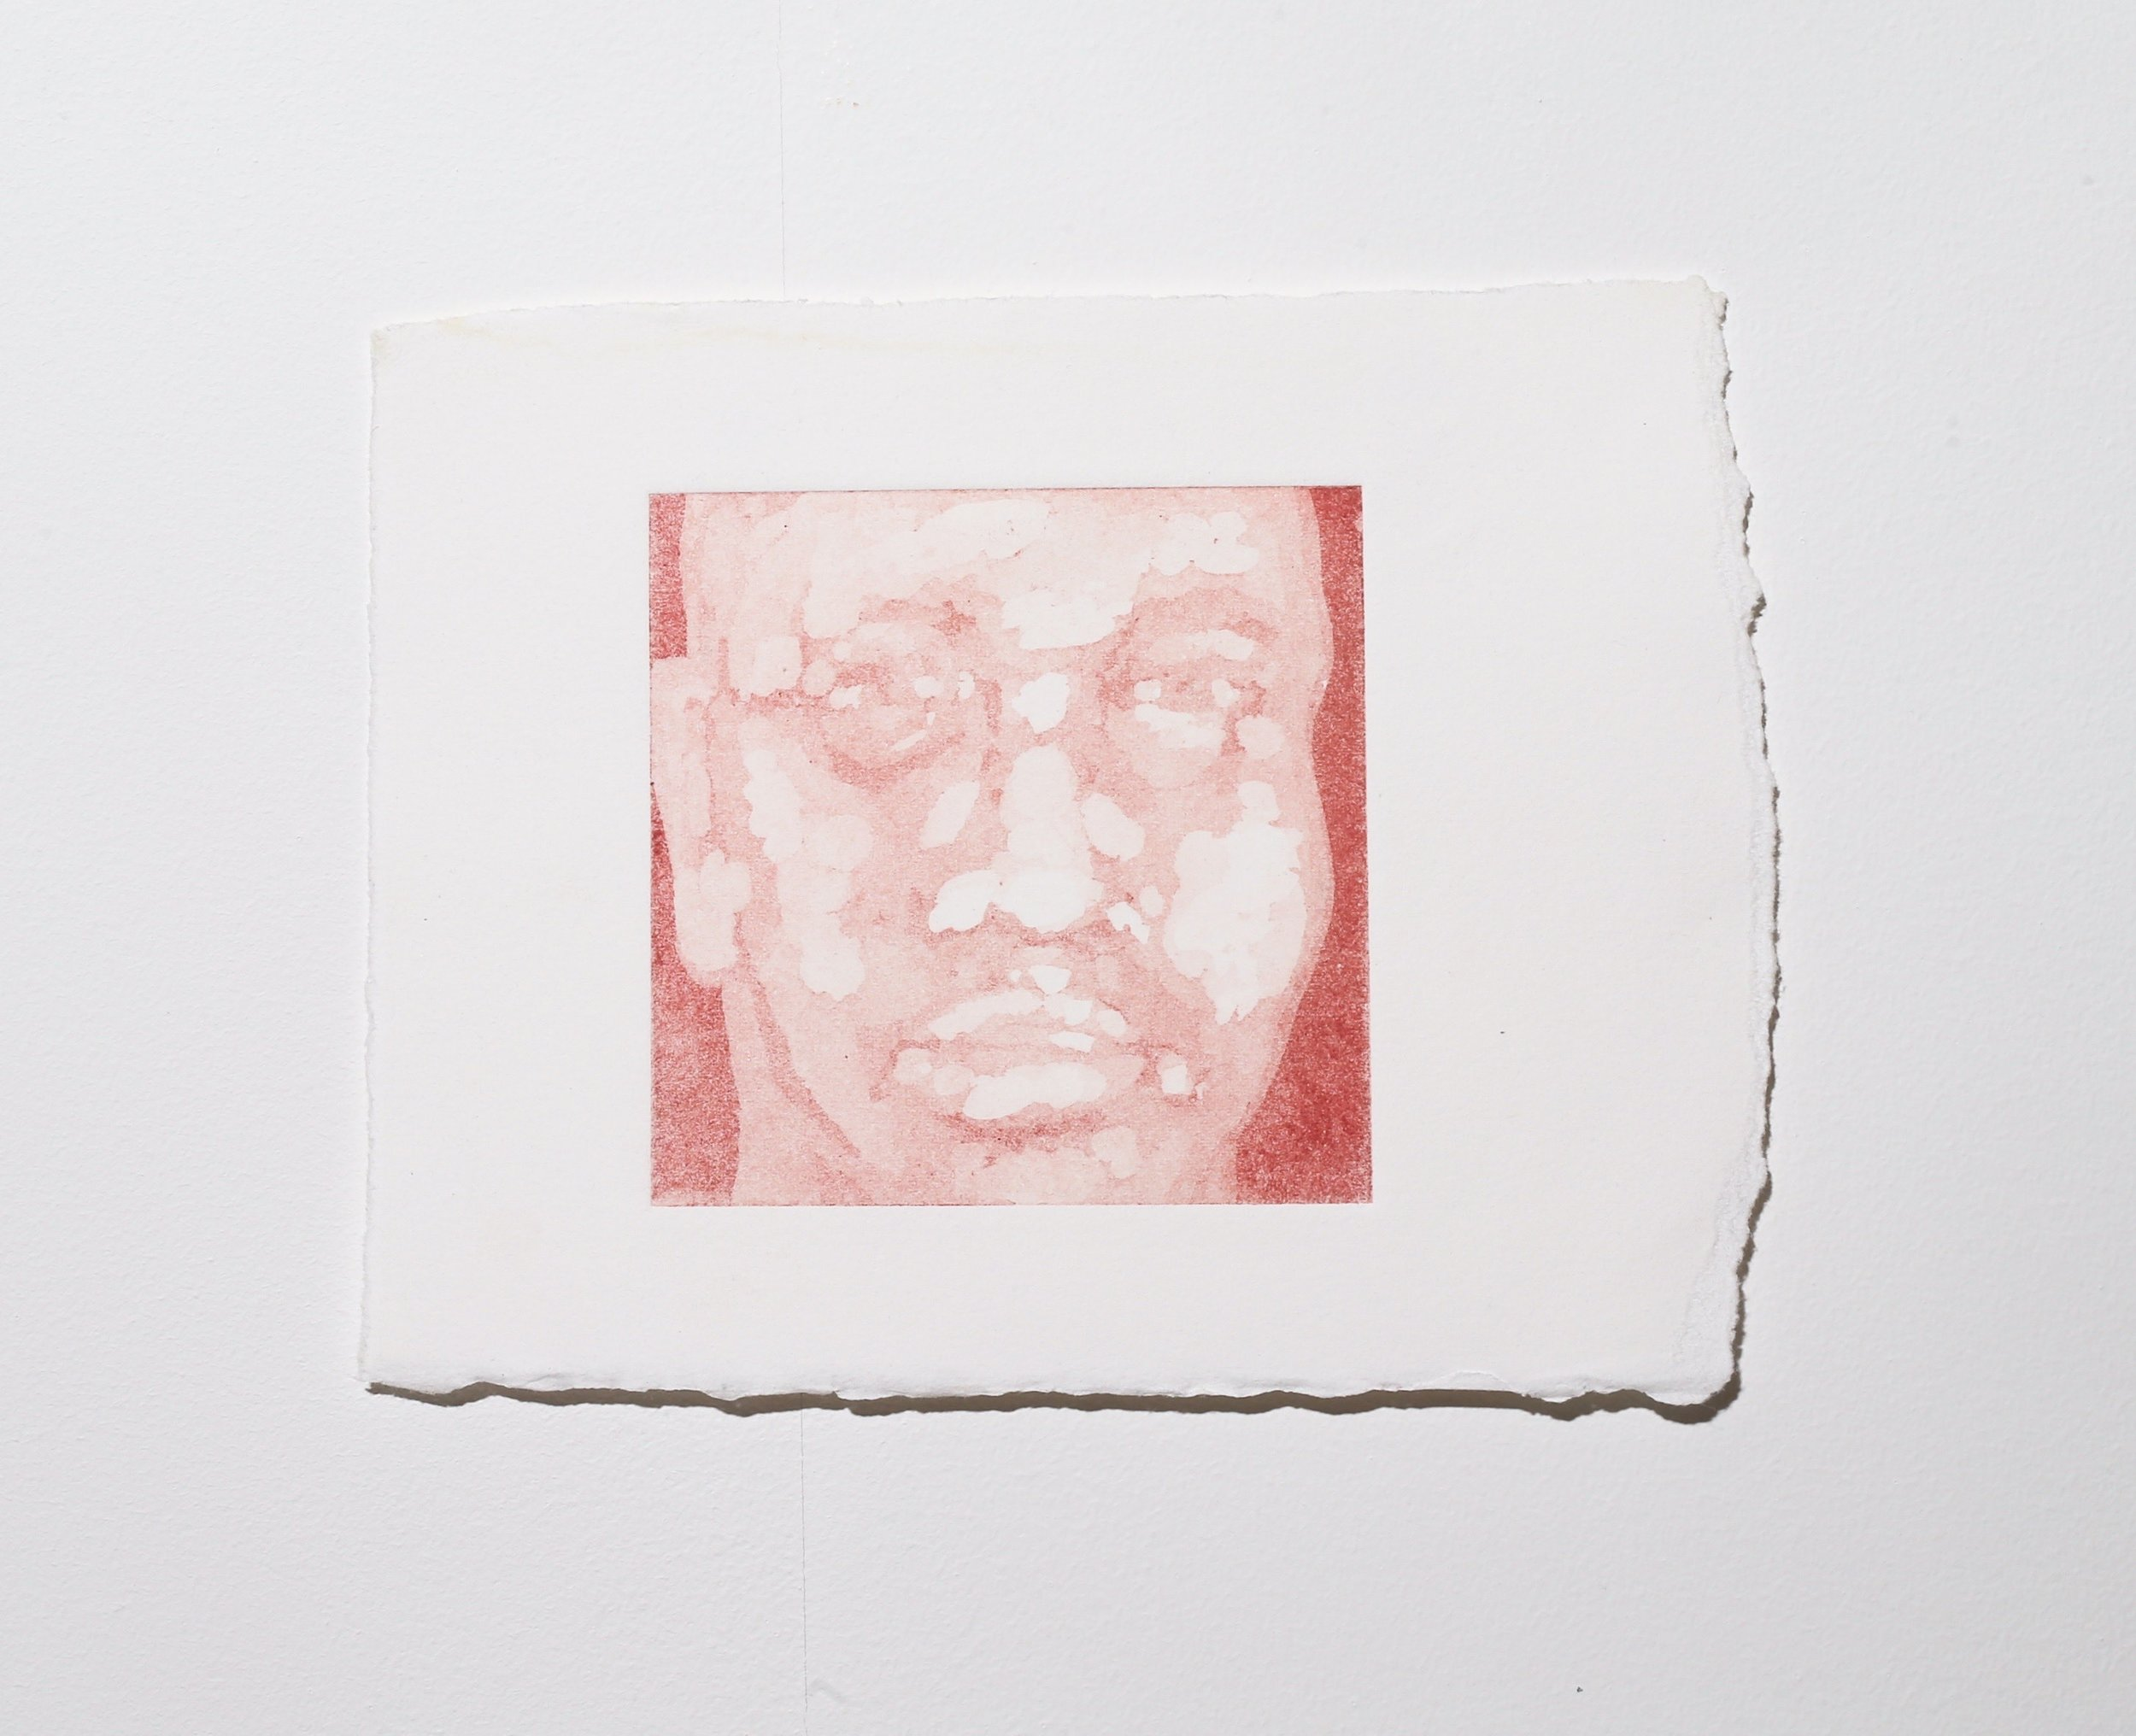 Face (stage 1) , 2019, aquatint, 9.5 x 10 cm (plate size), $60